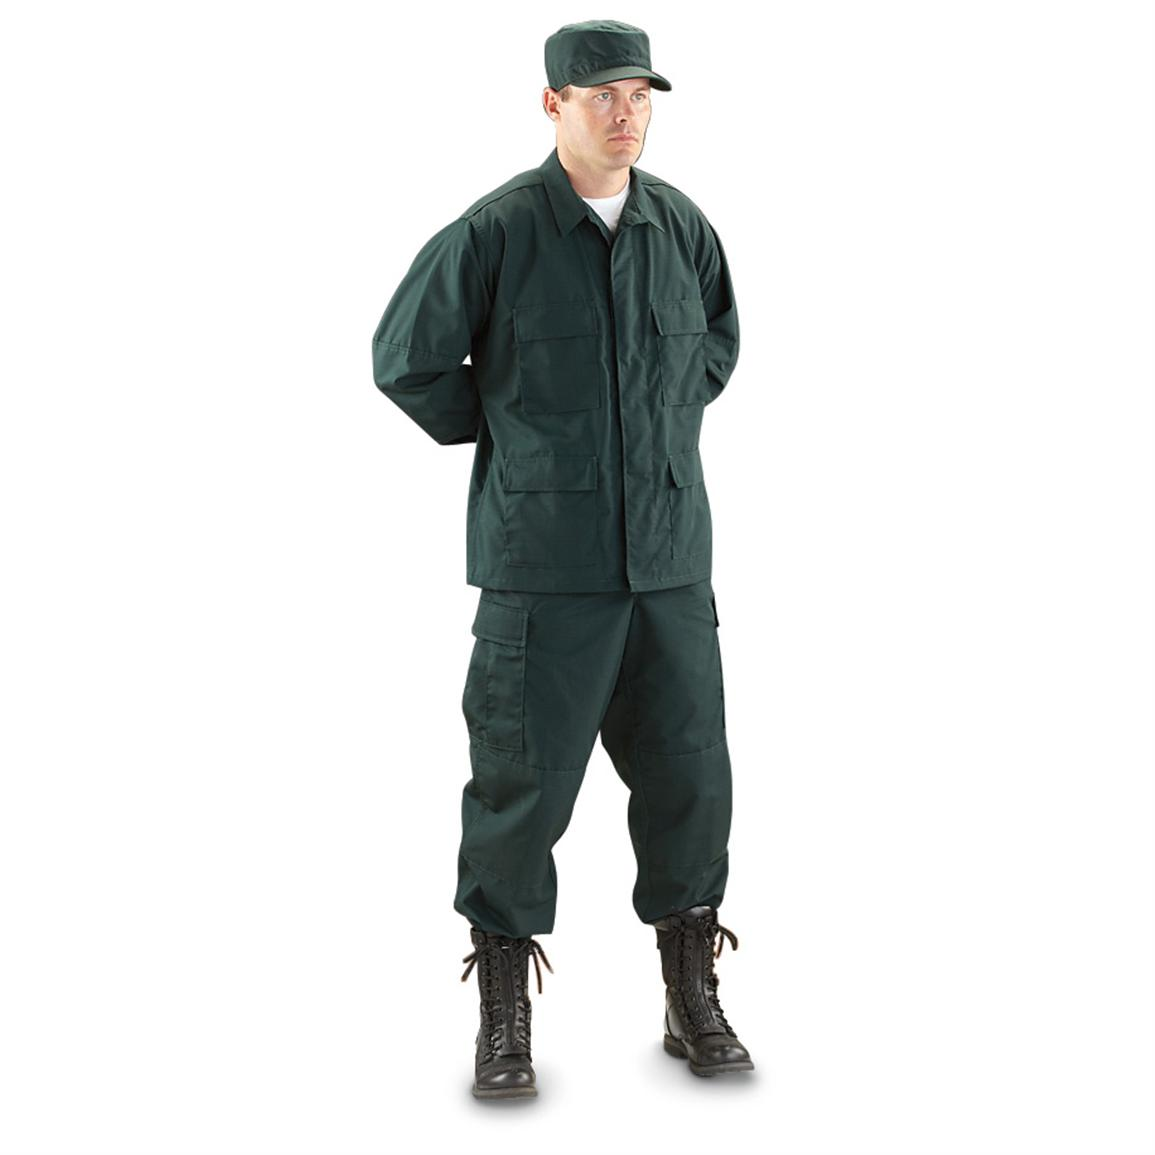 HQ ISSUE™ Military-style BDU Clothing